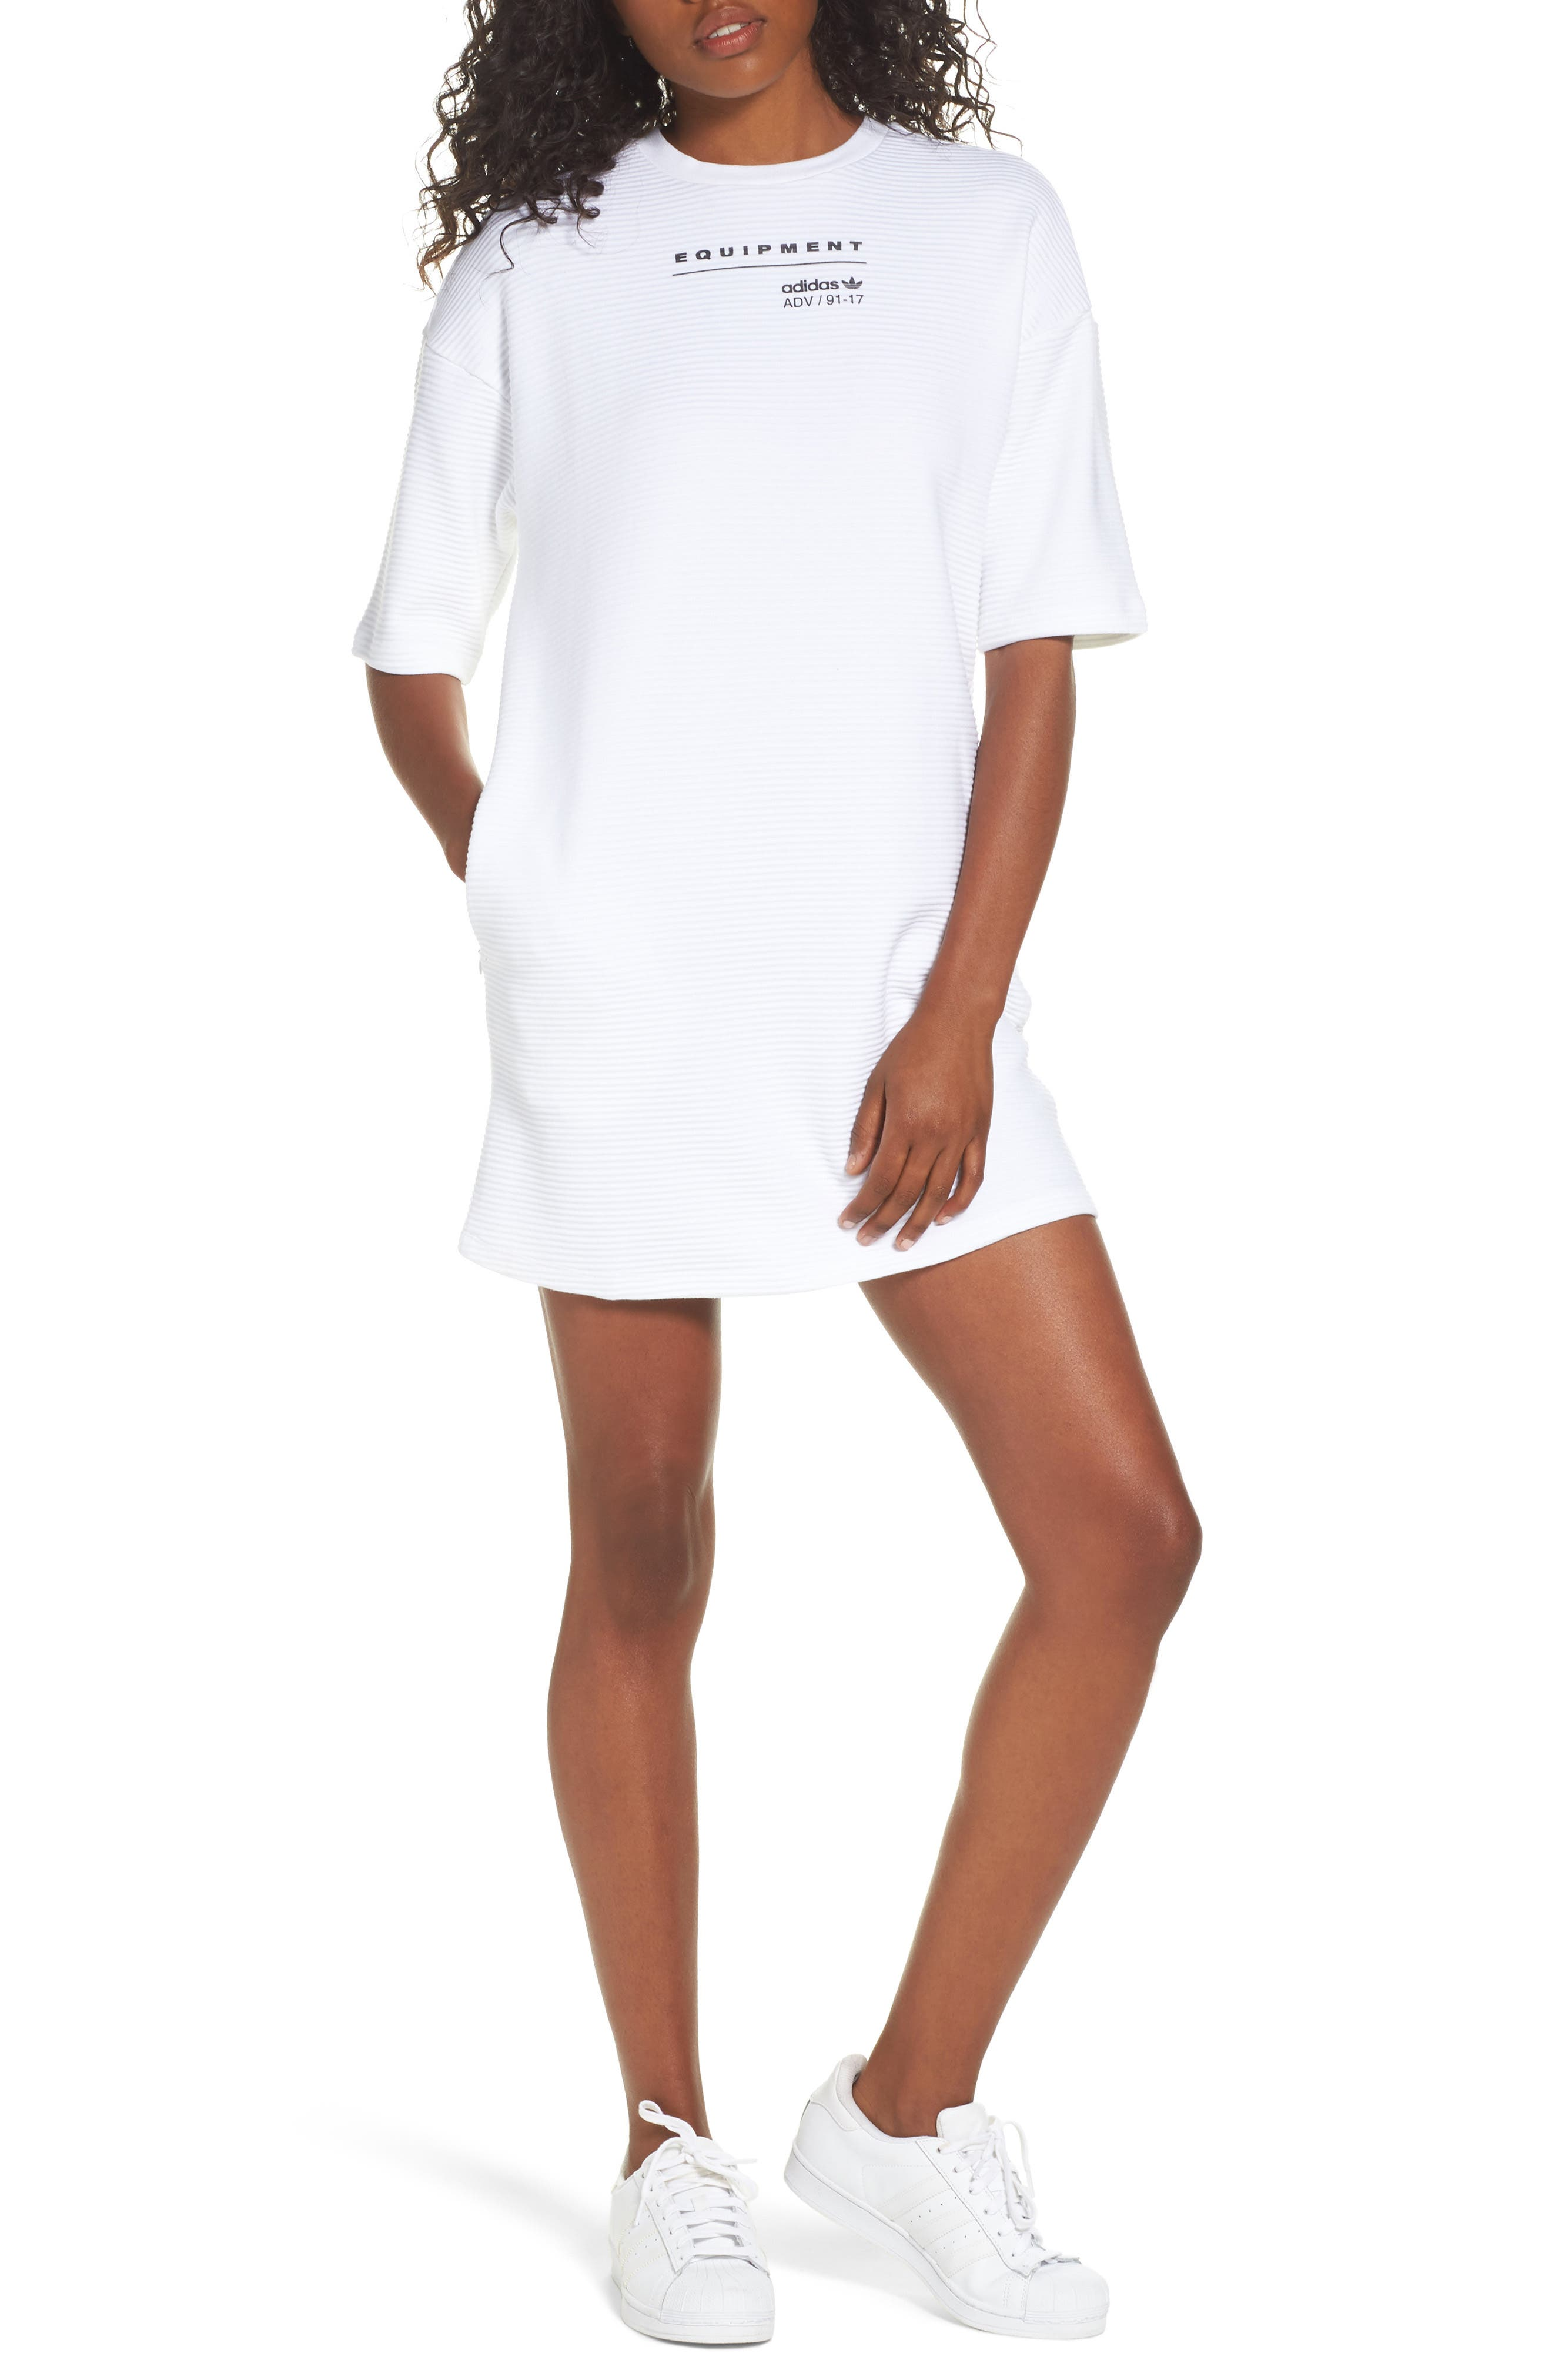 Originals EQT T-Shirt Dress,                             Main thumbnail 1, color,                             White